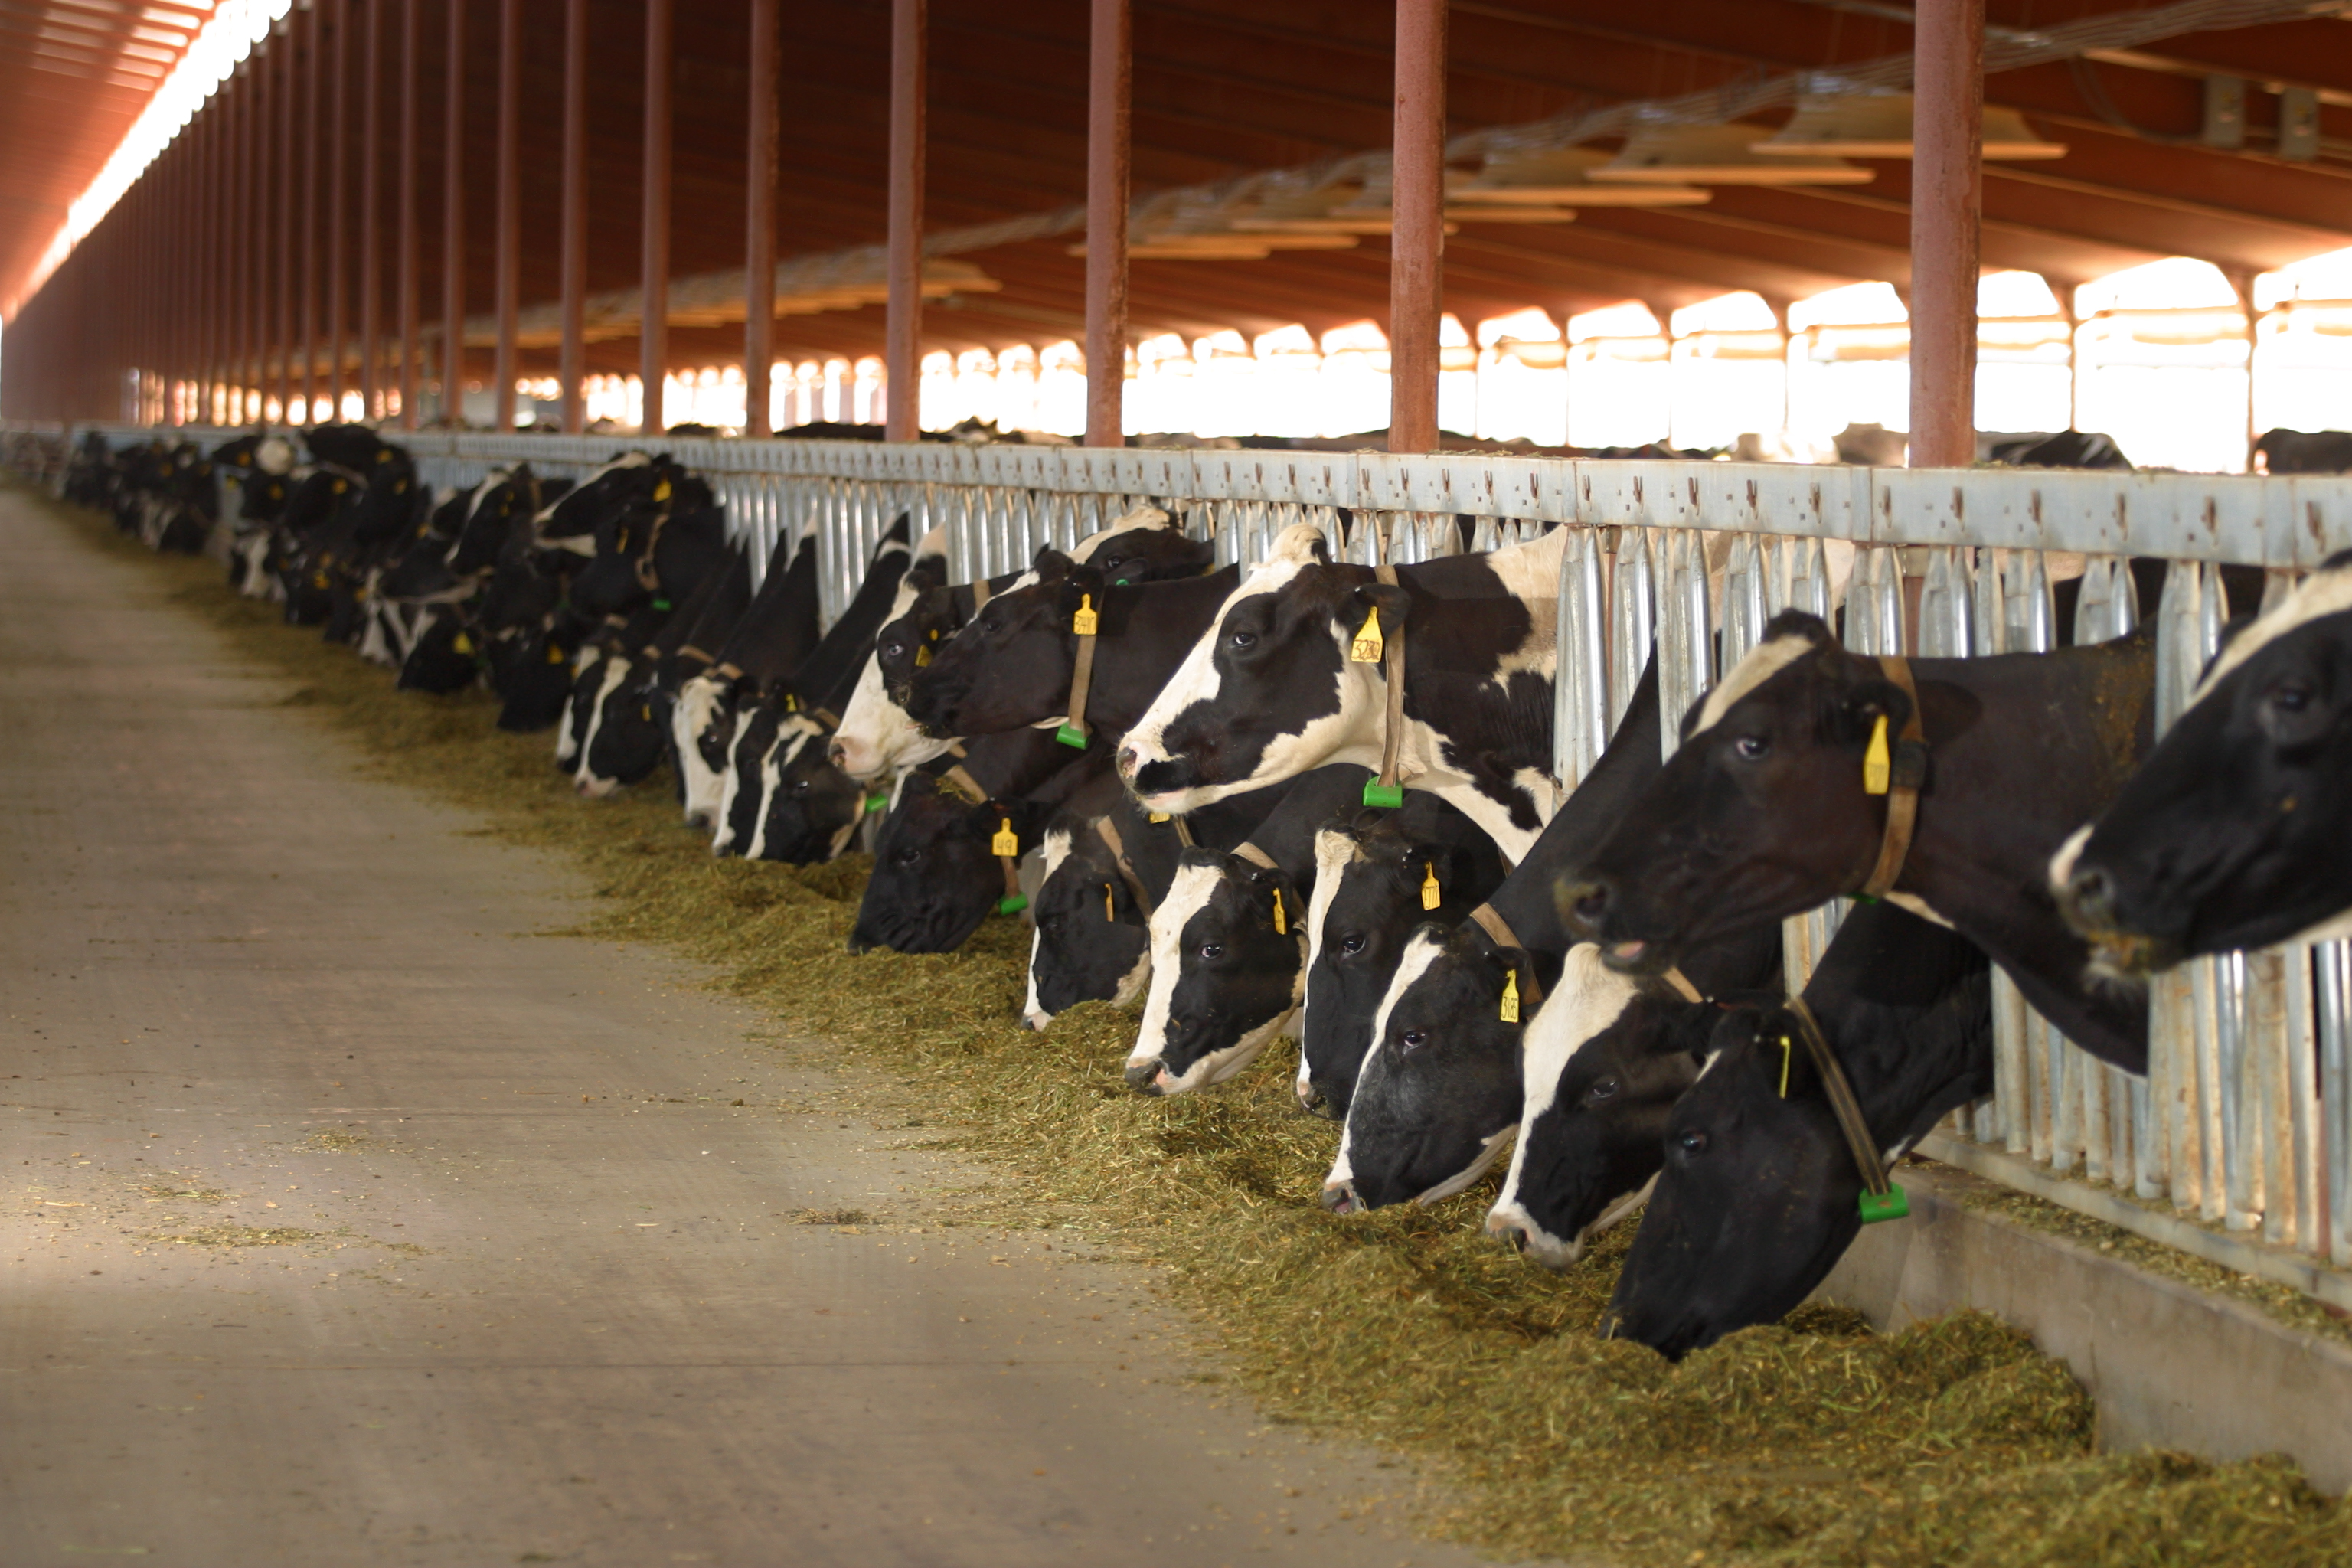 11 MARCH 2003 -- BUCKEYE, ARIZONA: Holstein dairy cows in a barn at the Triple G Dairy in Buckeye, AZ, March 11, 2003. The Triple G is one the most technologically advanced dairies in Arizona. More than 3,000 cows per day are milked at the dairy on two rotating carousels which hold 48 cows a piece. PHOTO BY JACK KURTZ